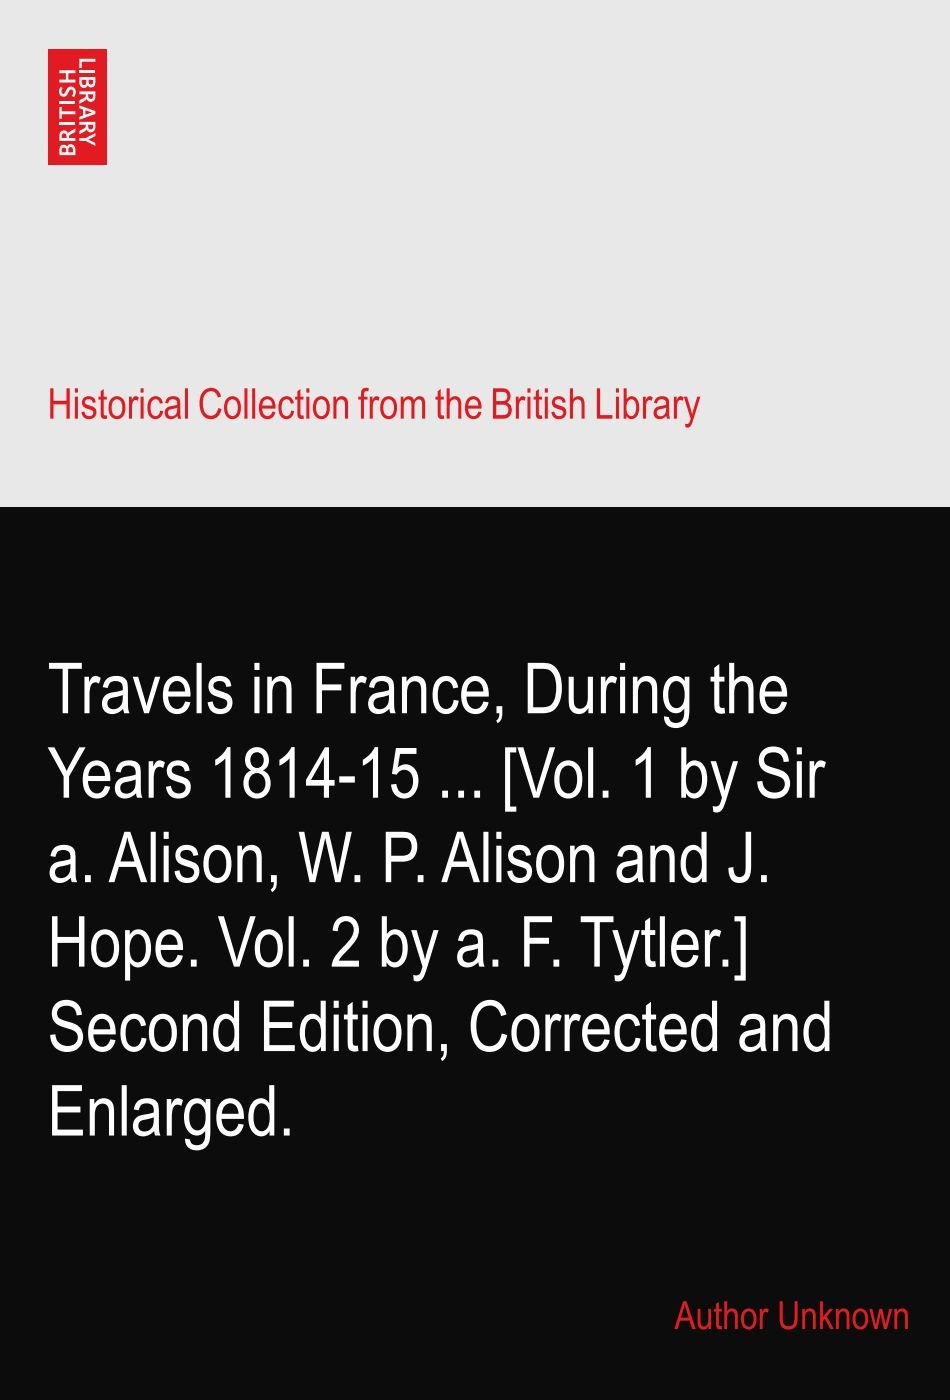 Read Online Travels in France, During the Years 1814-15 ... [Vol. 1 by Sir a. Alison, W. P. Alison and J. Hope. Vol. 2 by a. F. Tytler.] Second Edition, Corrected and Enlarged. pdf